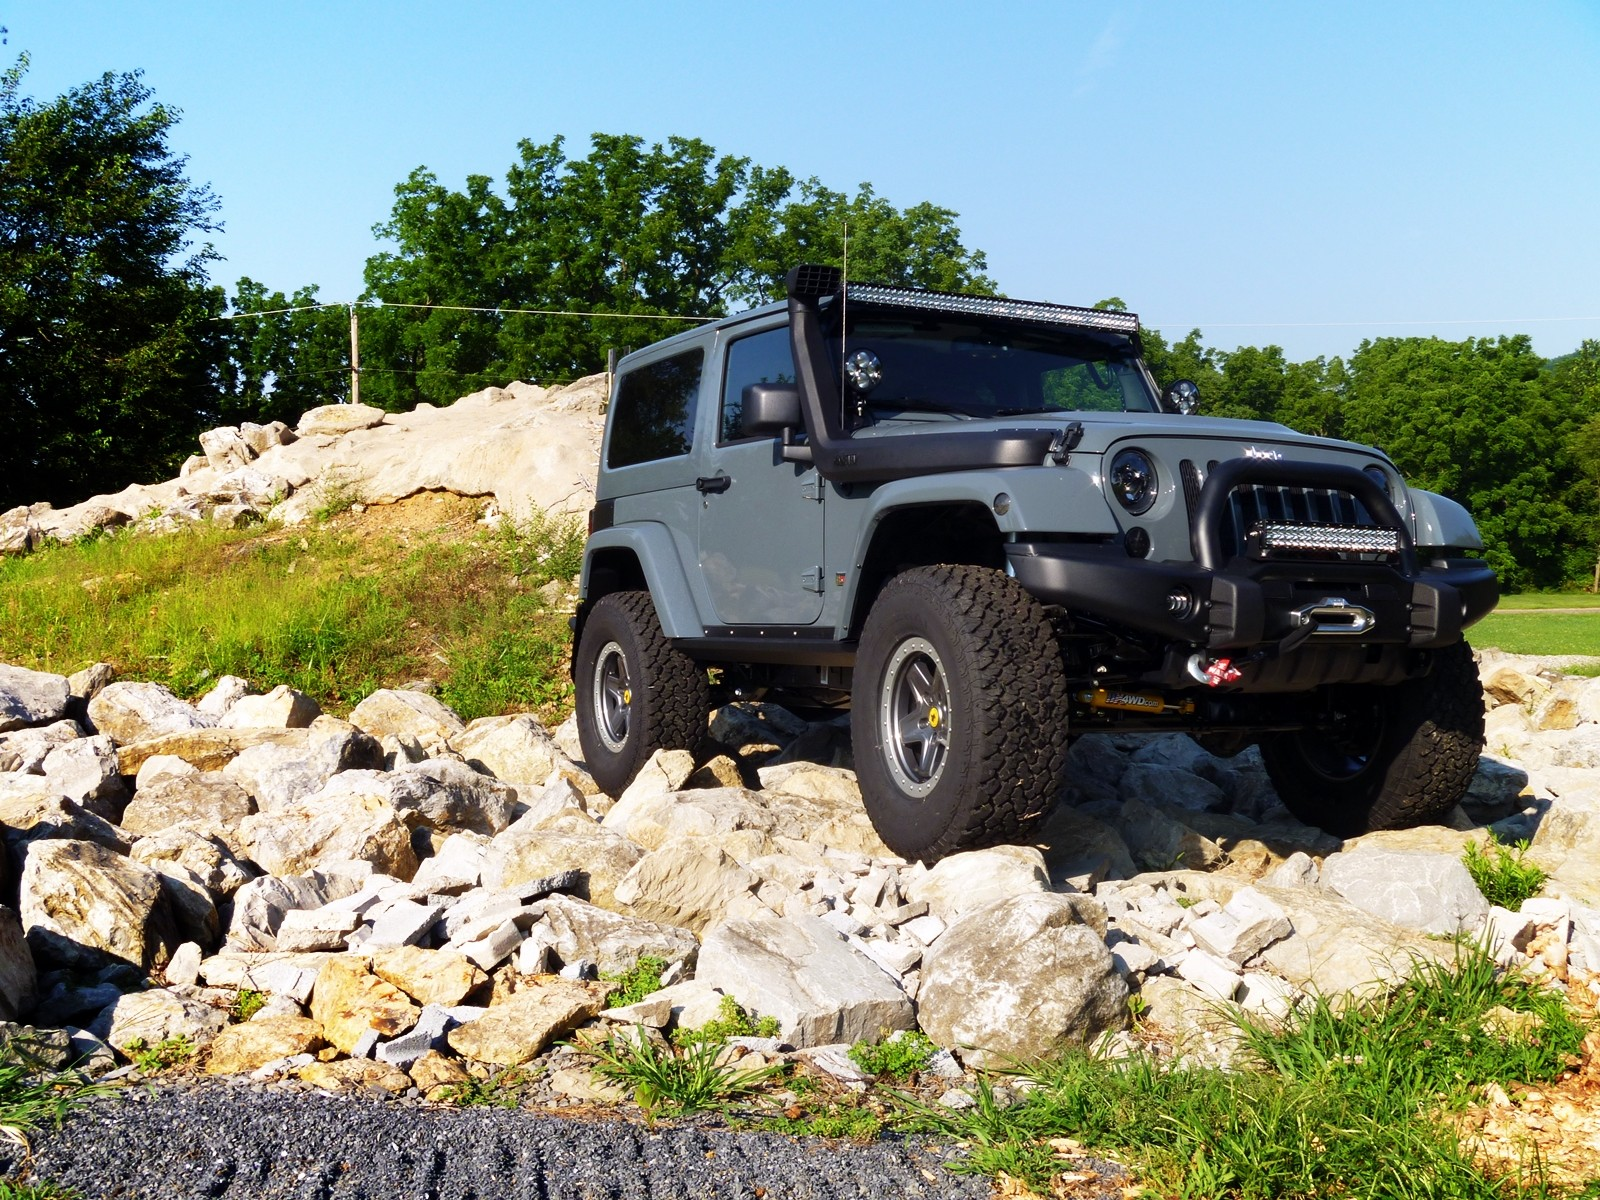 2013 Jeep Wrangler 10th Anniversary Rubicon Expedition Ready